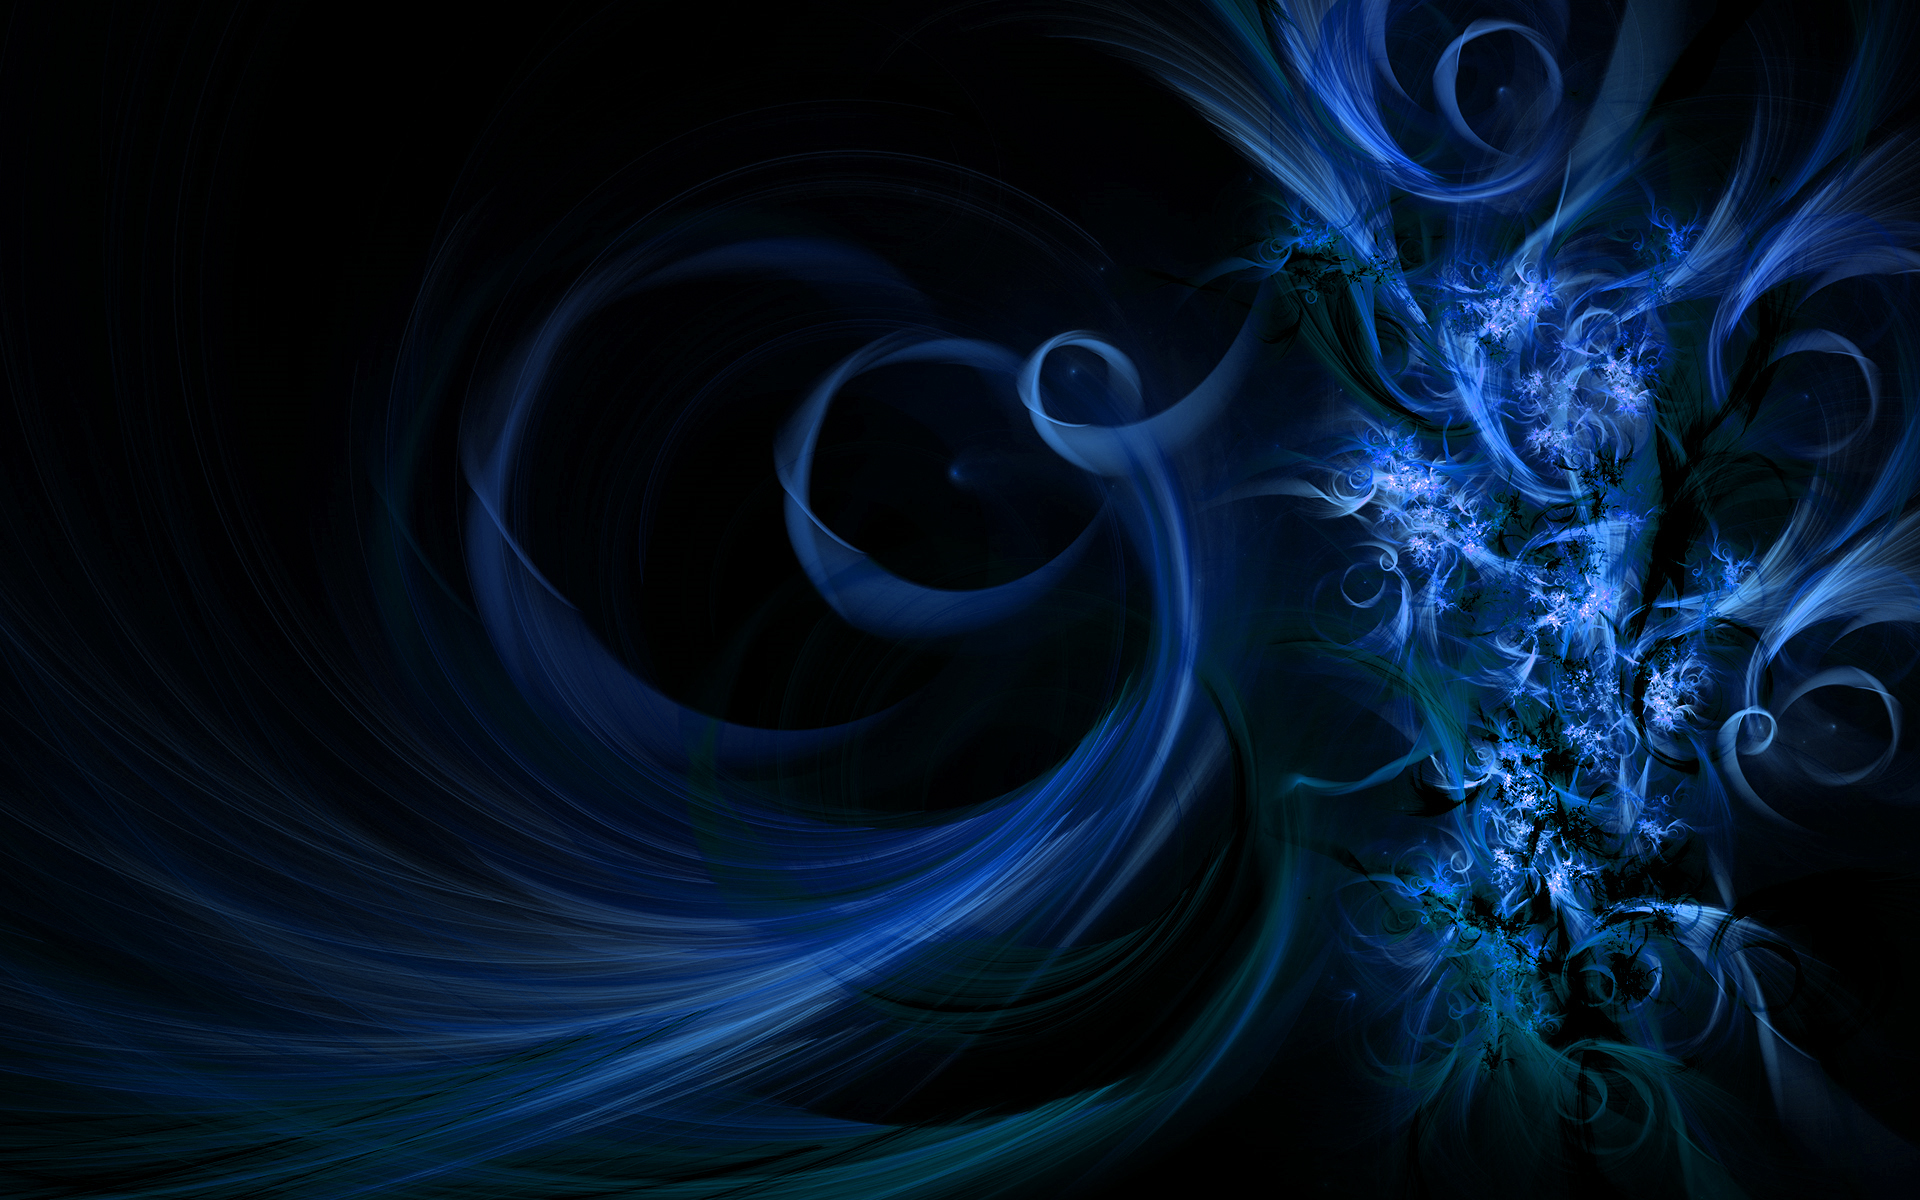 swirly blue widescreen abstract HD Wallpaper